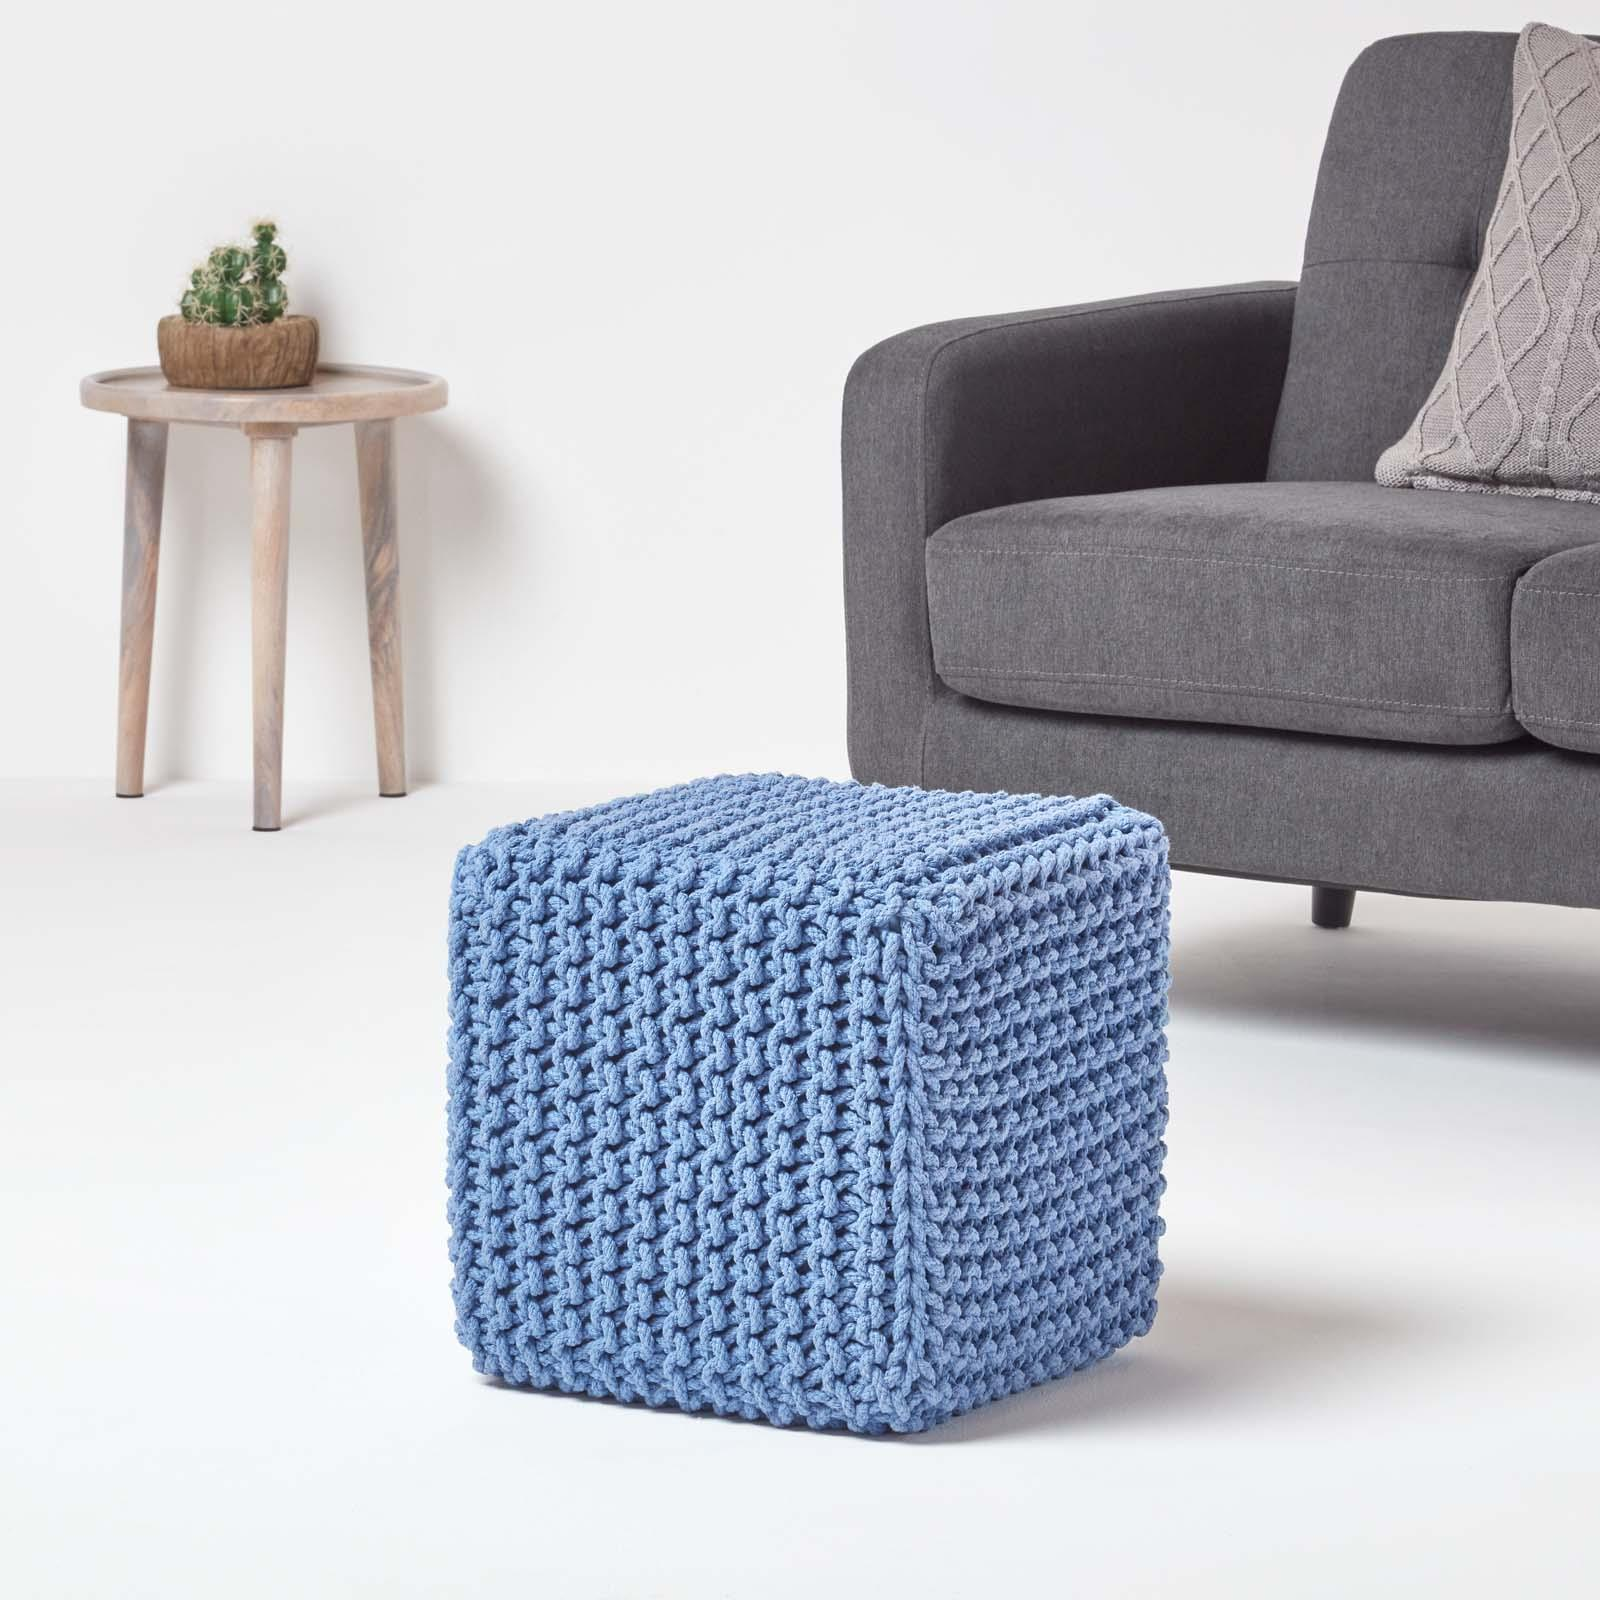 Hand-Knitted-100-Cotton-Pouffes-Round-Sphere-Or-Cube-Square-Chunky-Footstools thumbnail 22